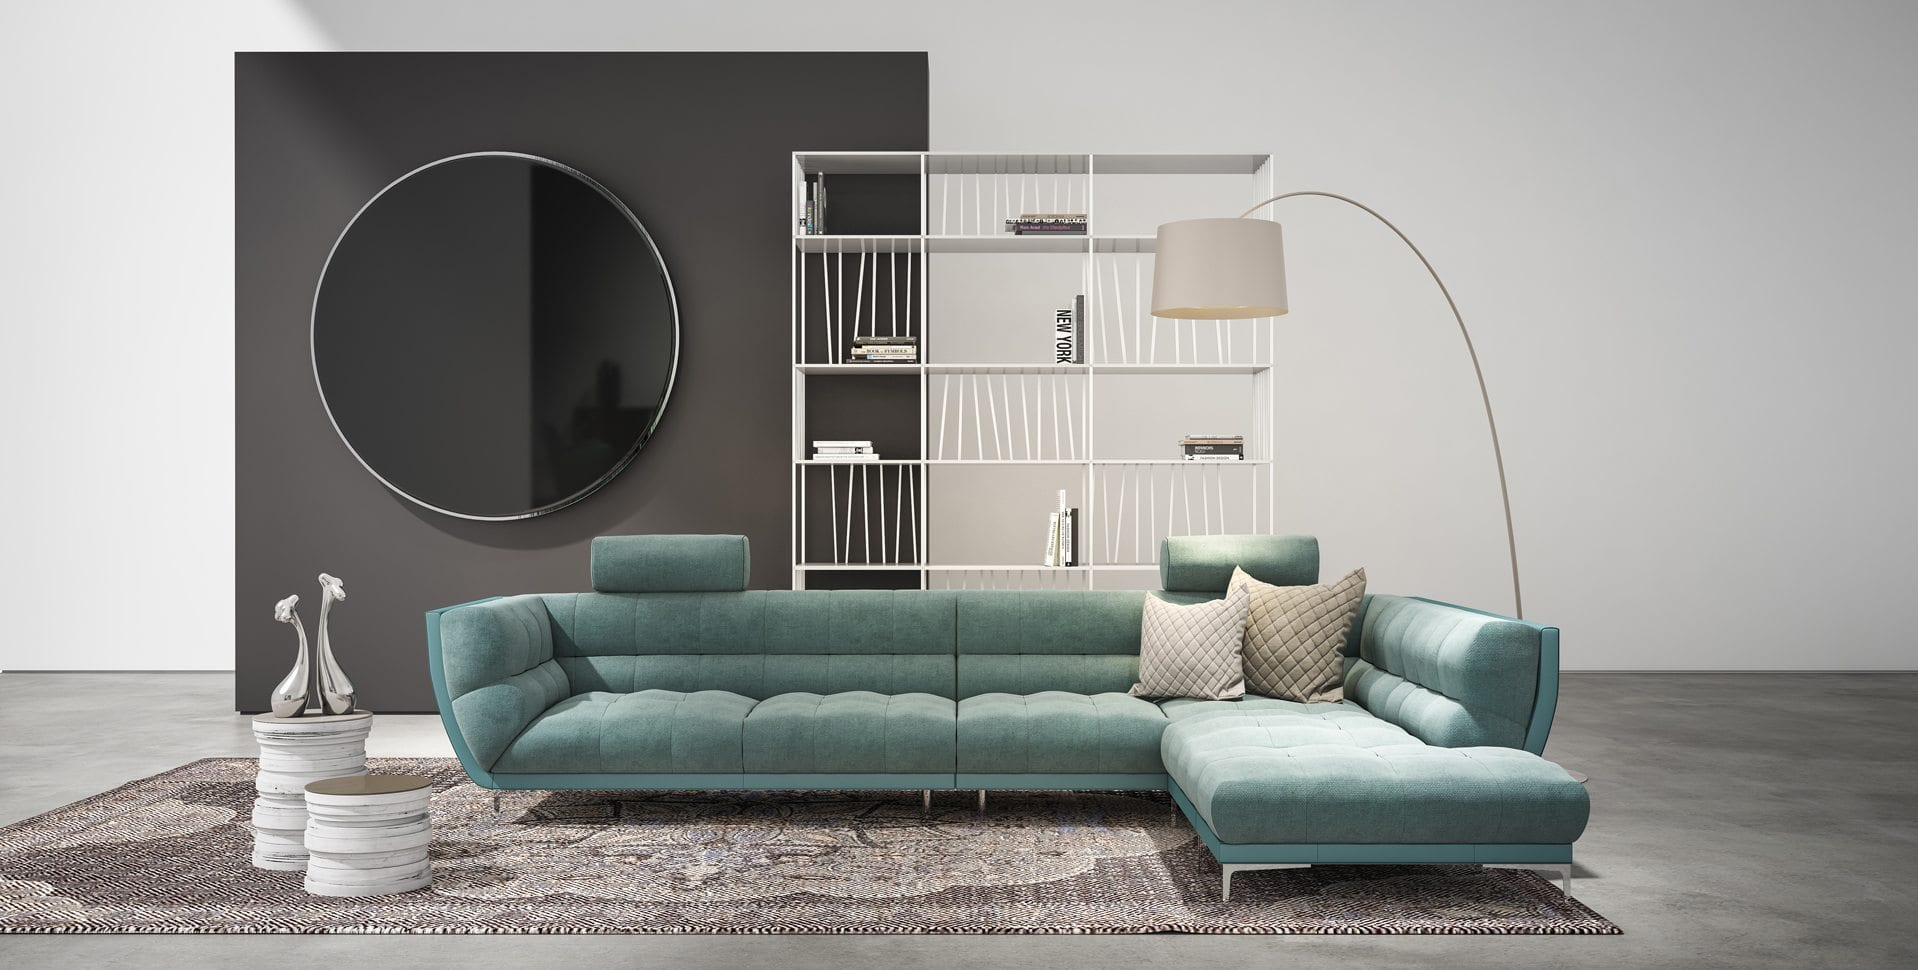 Maayan-Golan_Architectural-Visualization_product-visualization_living-room-sofa_rossetto-furniture_07